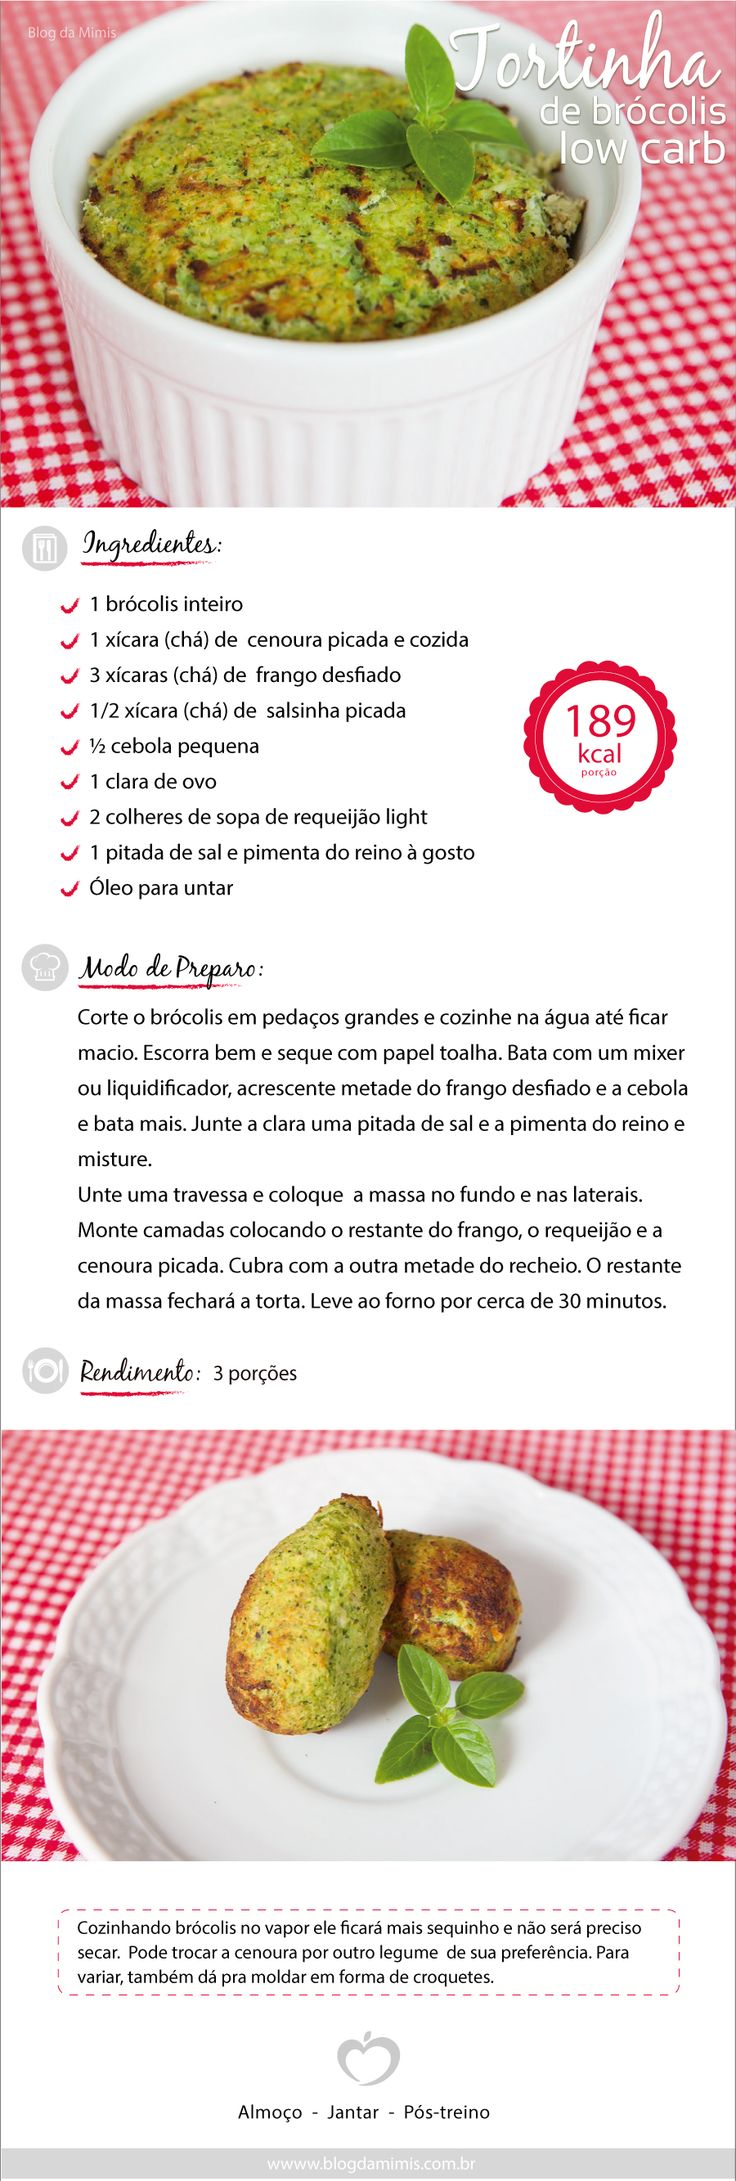 torta-de-brocolis-low-carb-blog-da-mimis-michelle-franzoni-post-2